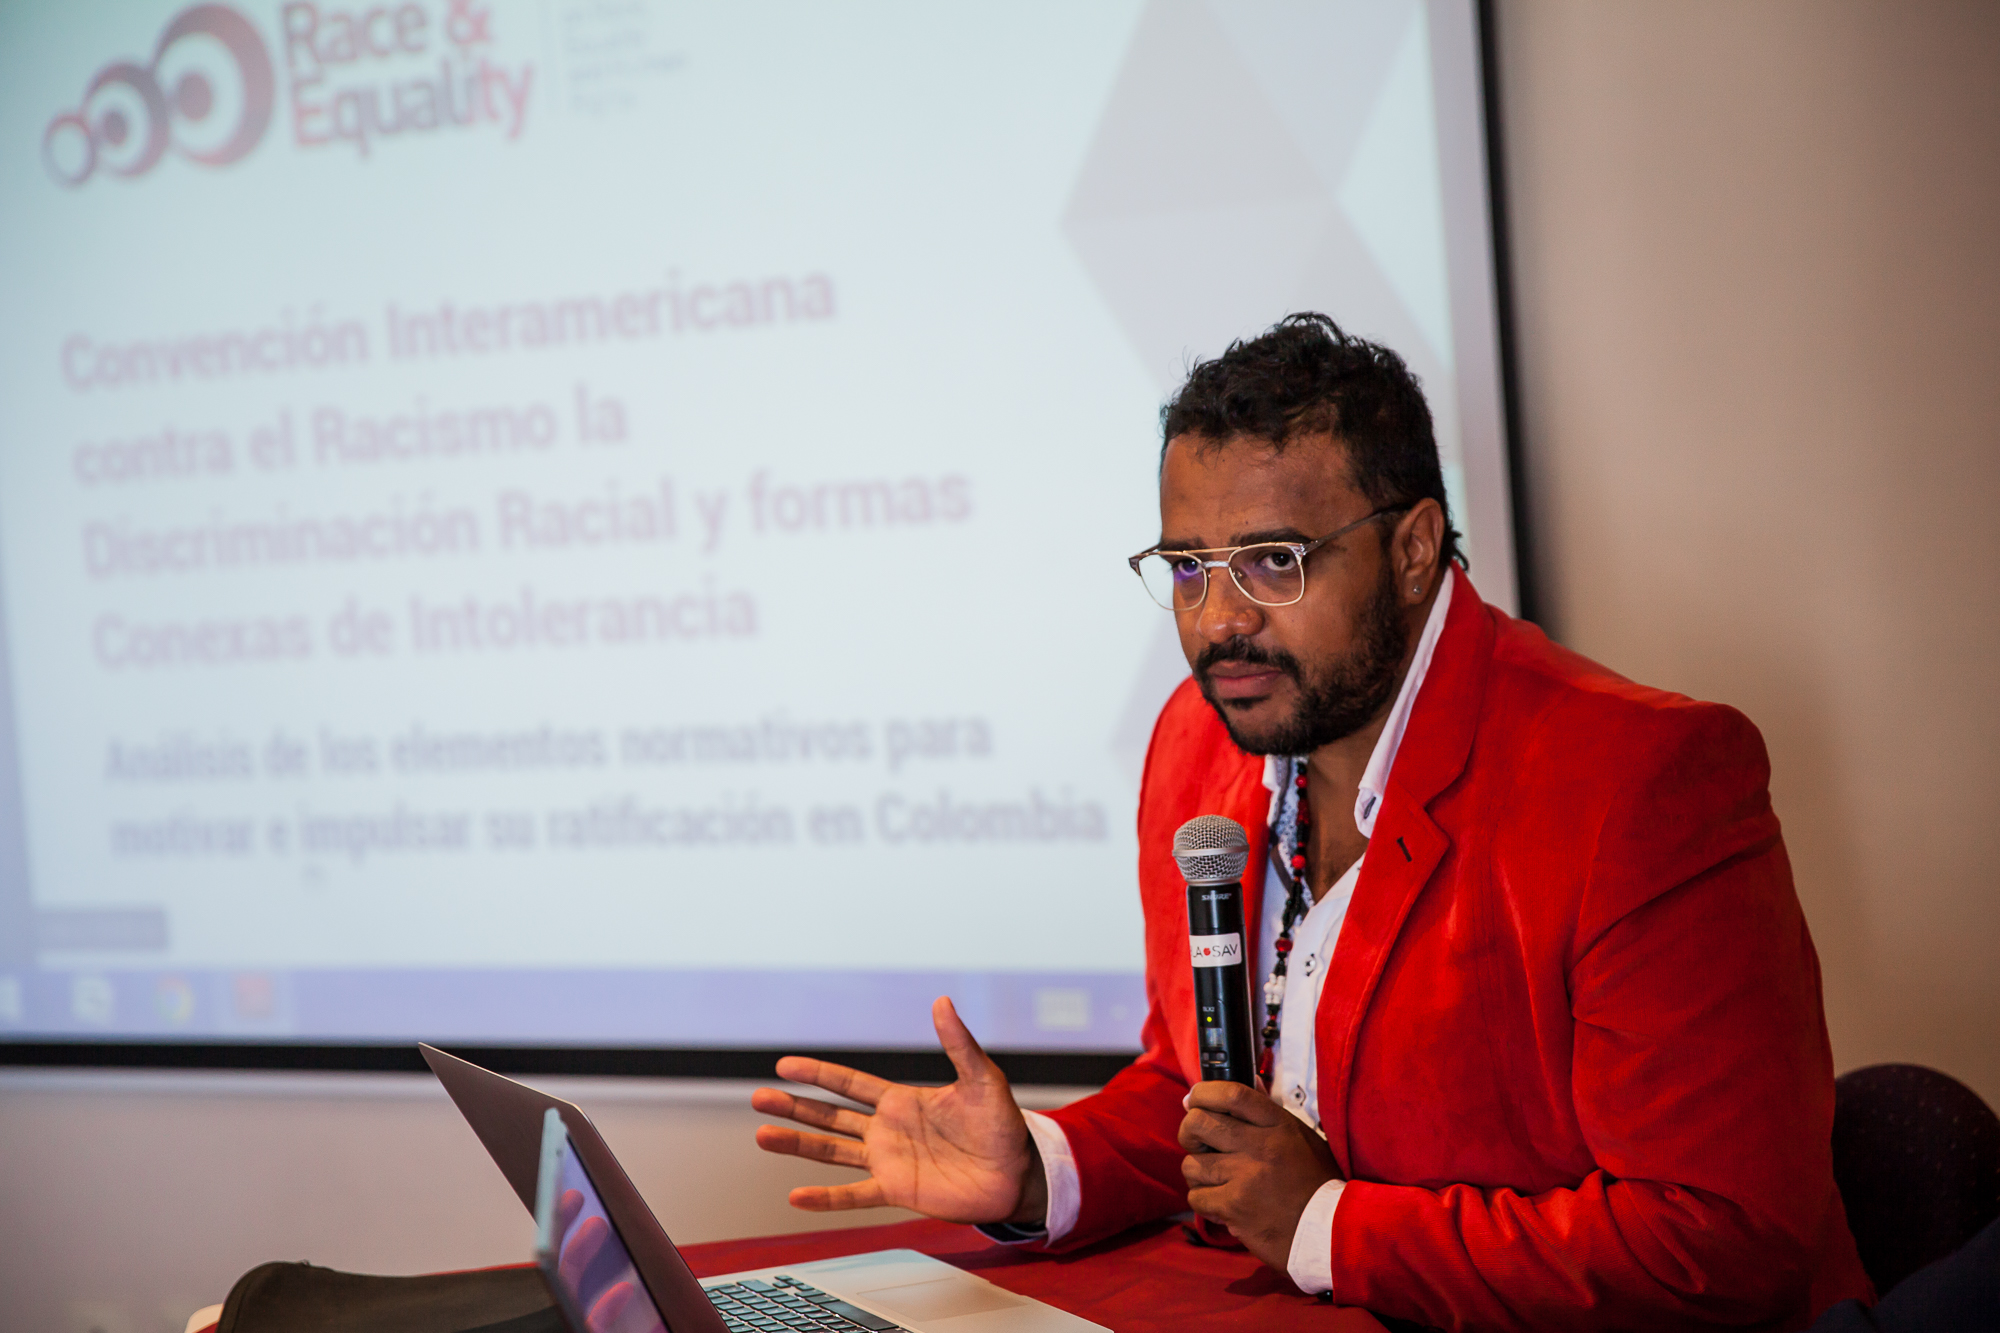 Event to promote the ratification of the Inter-American Convention against Racism, Racial Discrimination and Related Forms of Intolerance by Colombia